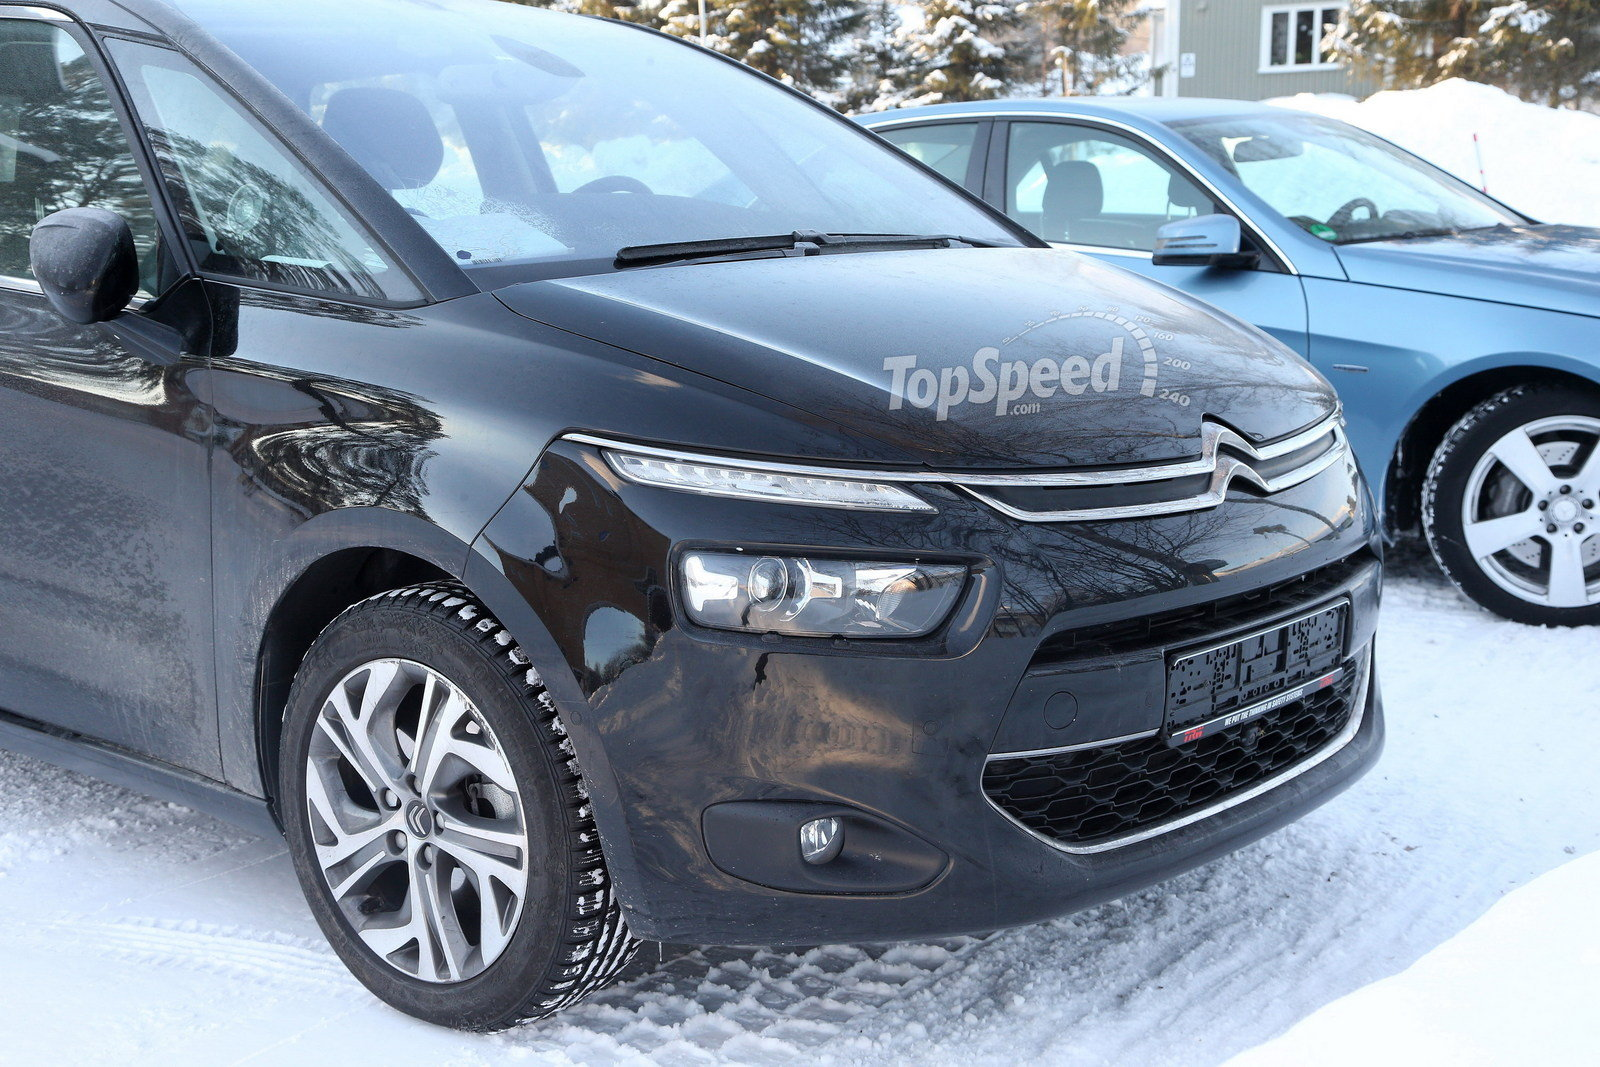 2013 citroen c4 picasso picture 497756 car review top speed. Black Bedroom Furniture Sets. Home Design Ideas